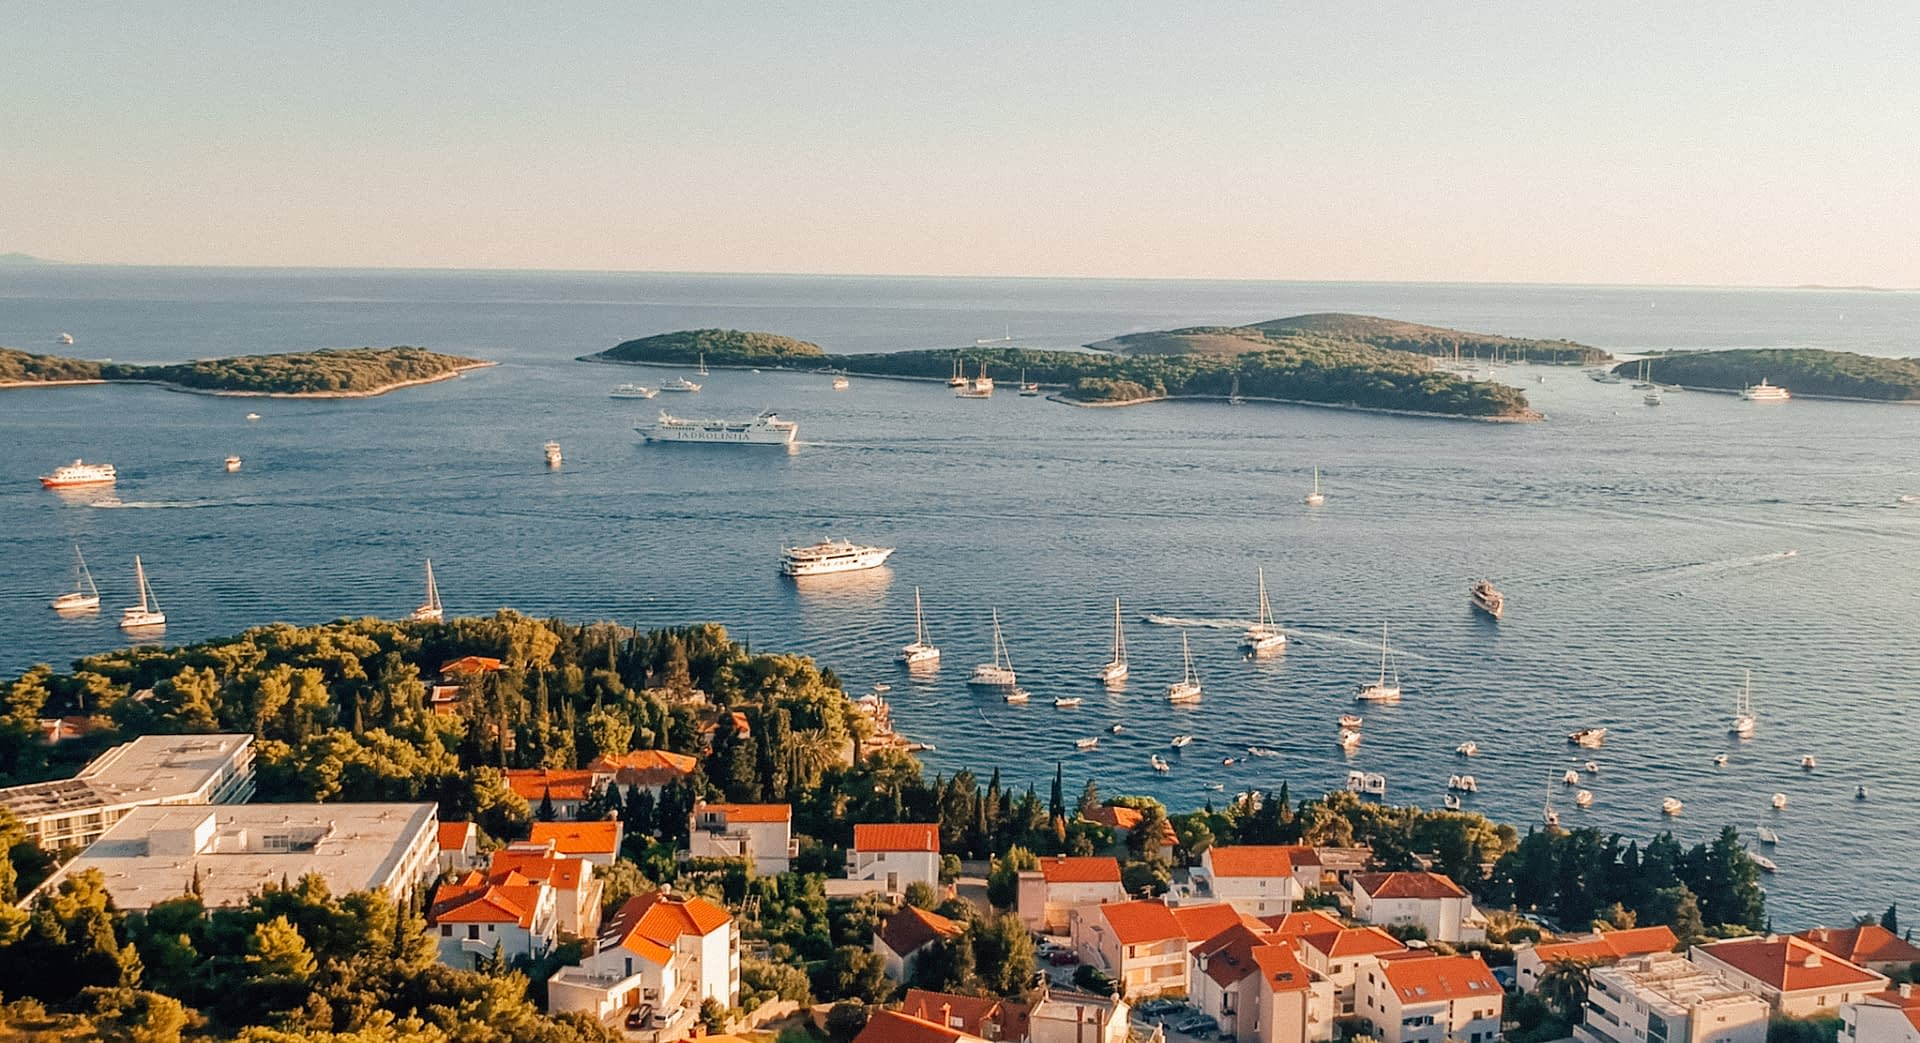 Hvar during sunset with islands and boats in the ocean. Things to do in Hvar